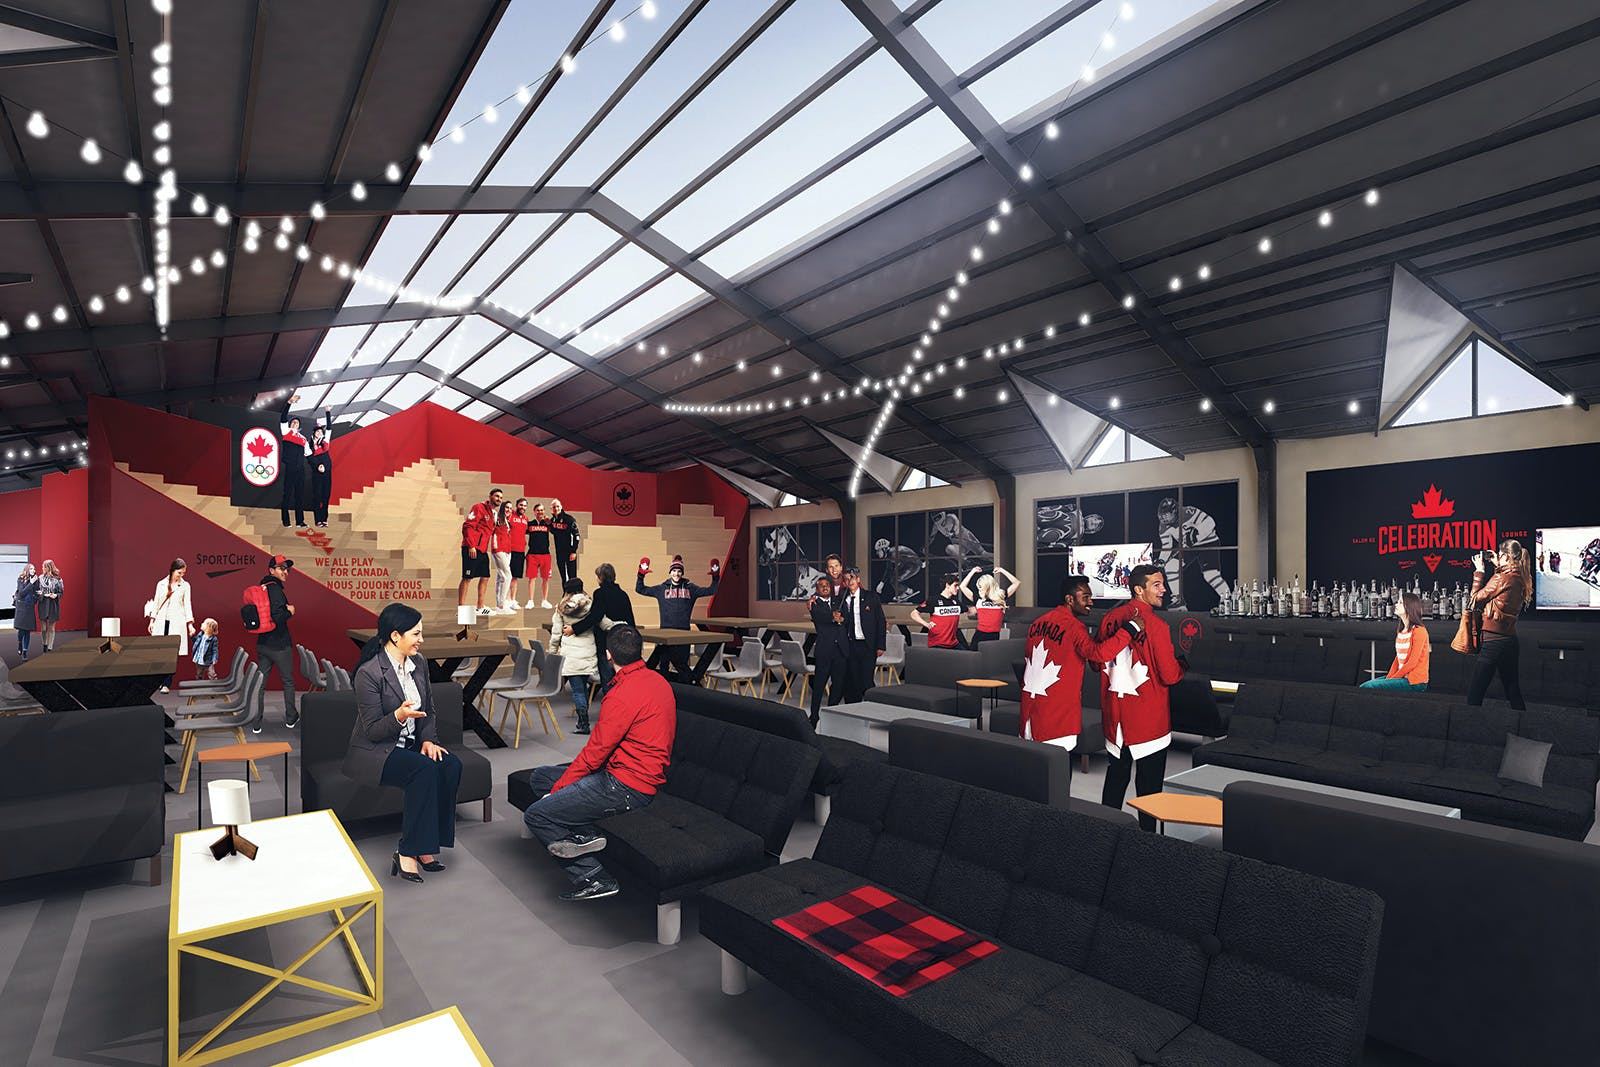 d0b48459032 Canada Olympic House at the Olympic Winter Games PyeongChang 2018. Image  courtesy of Canadian Olympic